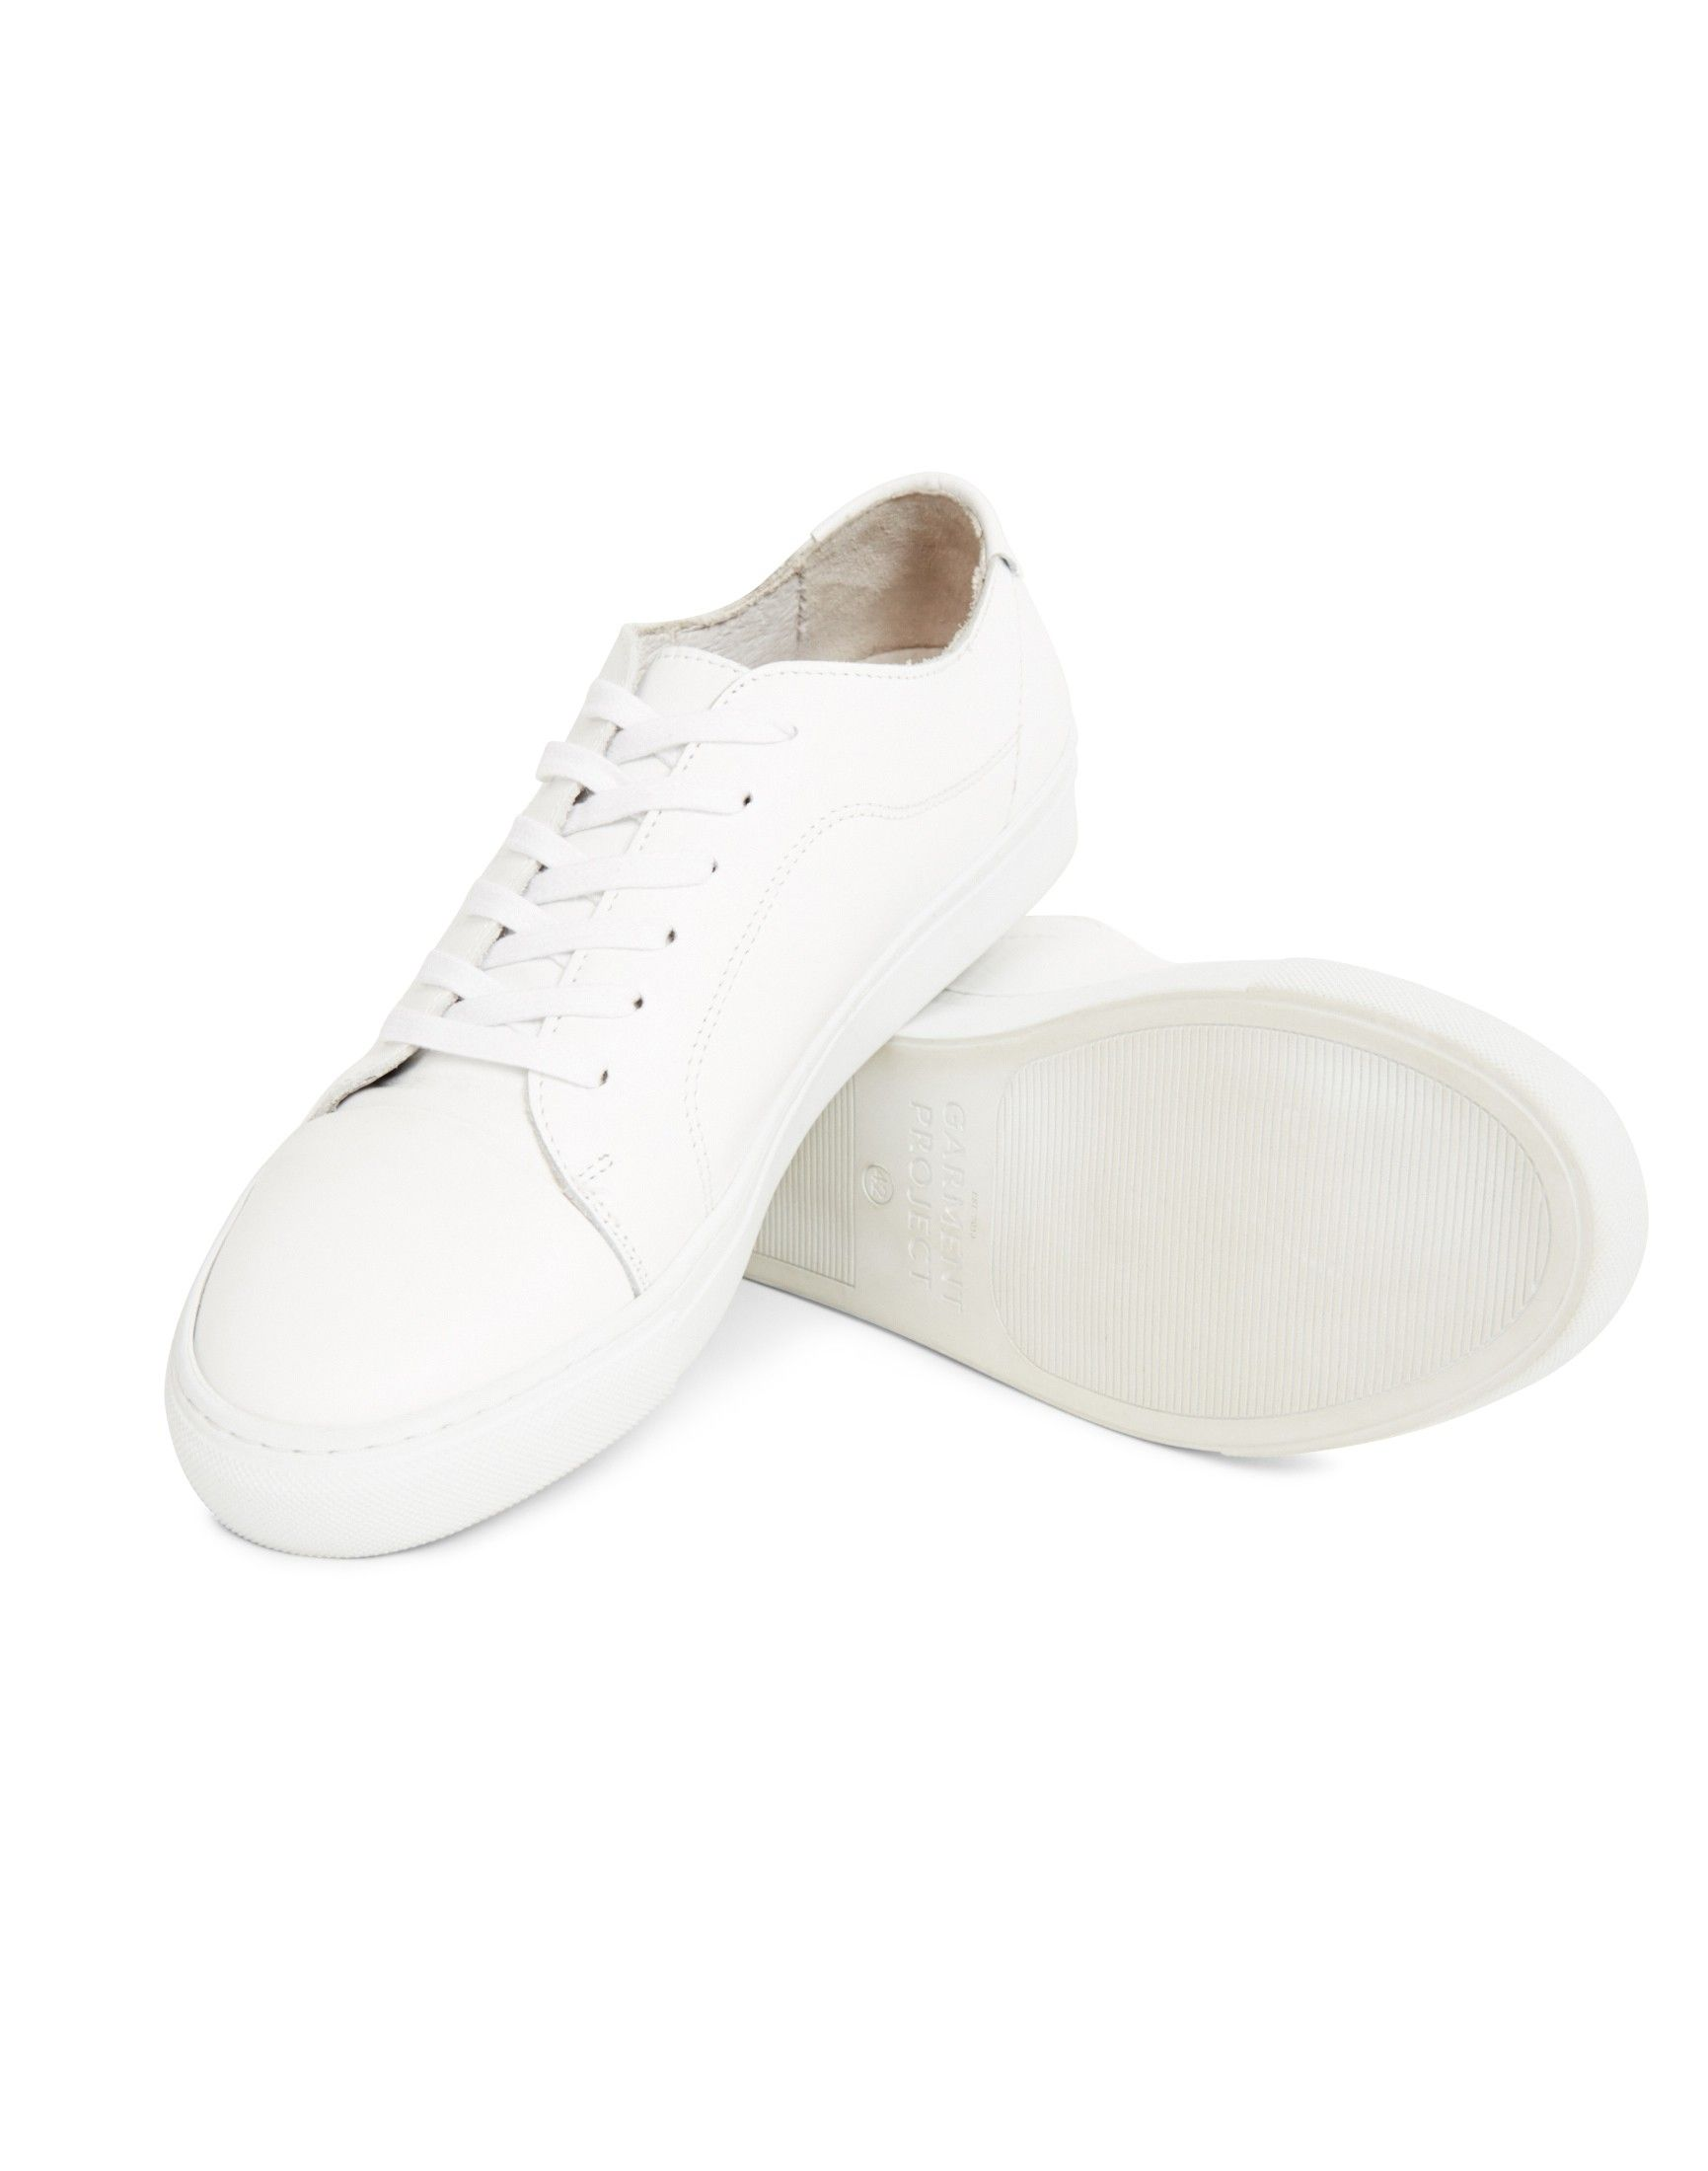 Garment Project Classic Lace Leather Trainer White   Shop men's trainers,  shoes and clothing at